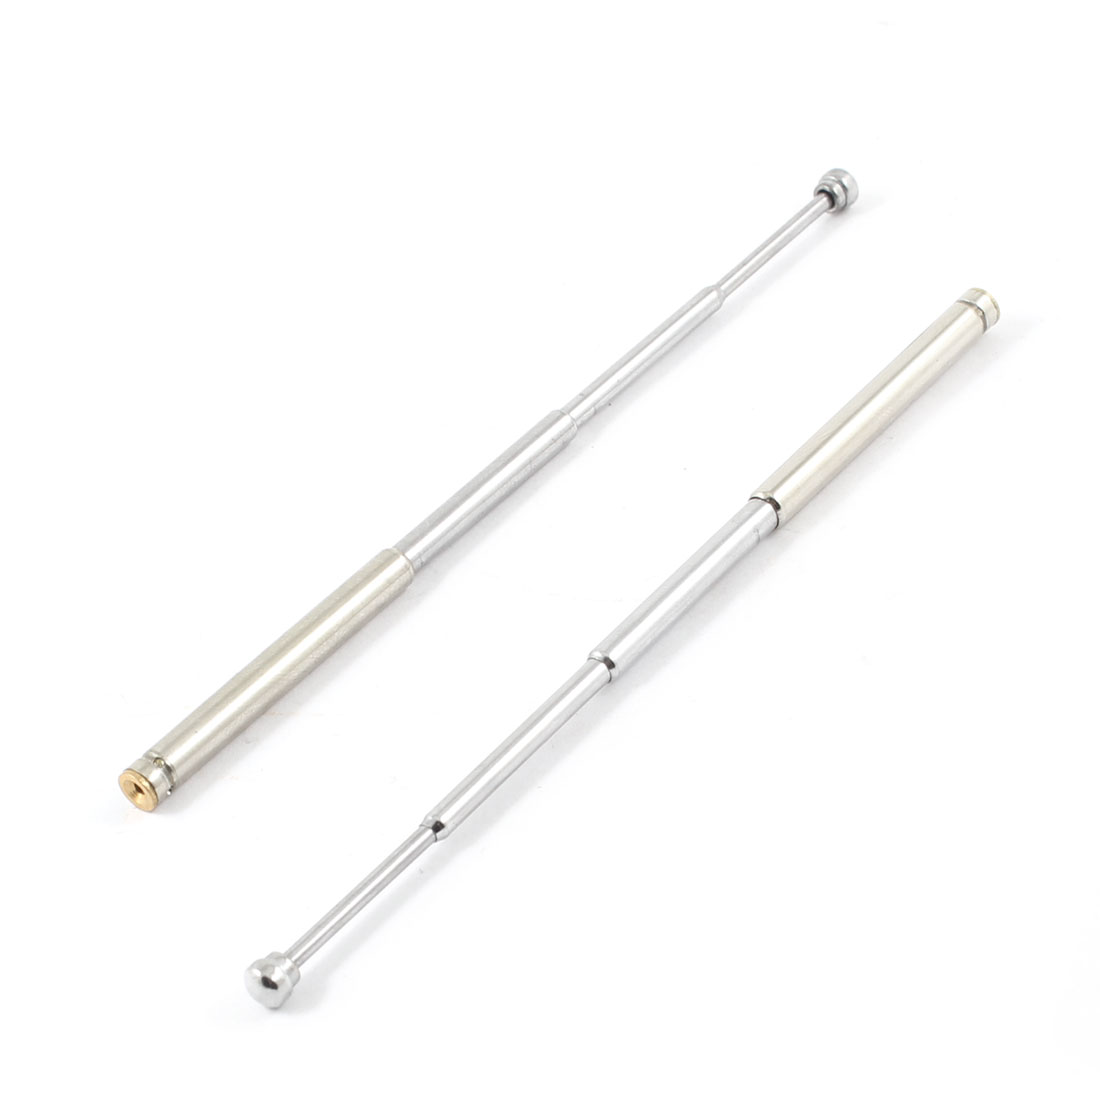 2-x-Stainless-Steel-Radio-Receiver-Telescopic-Antenna-4-Section-4-1-Long